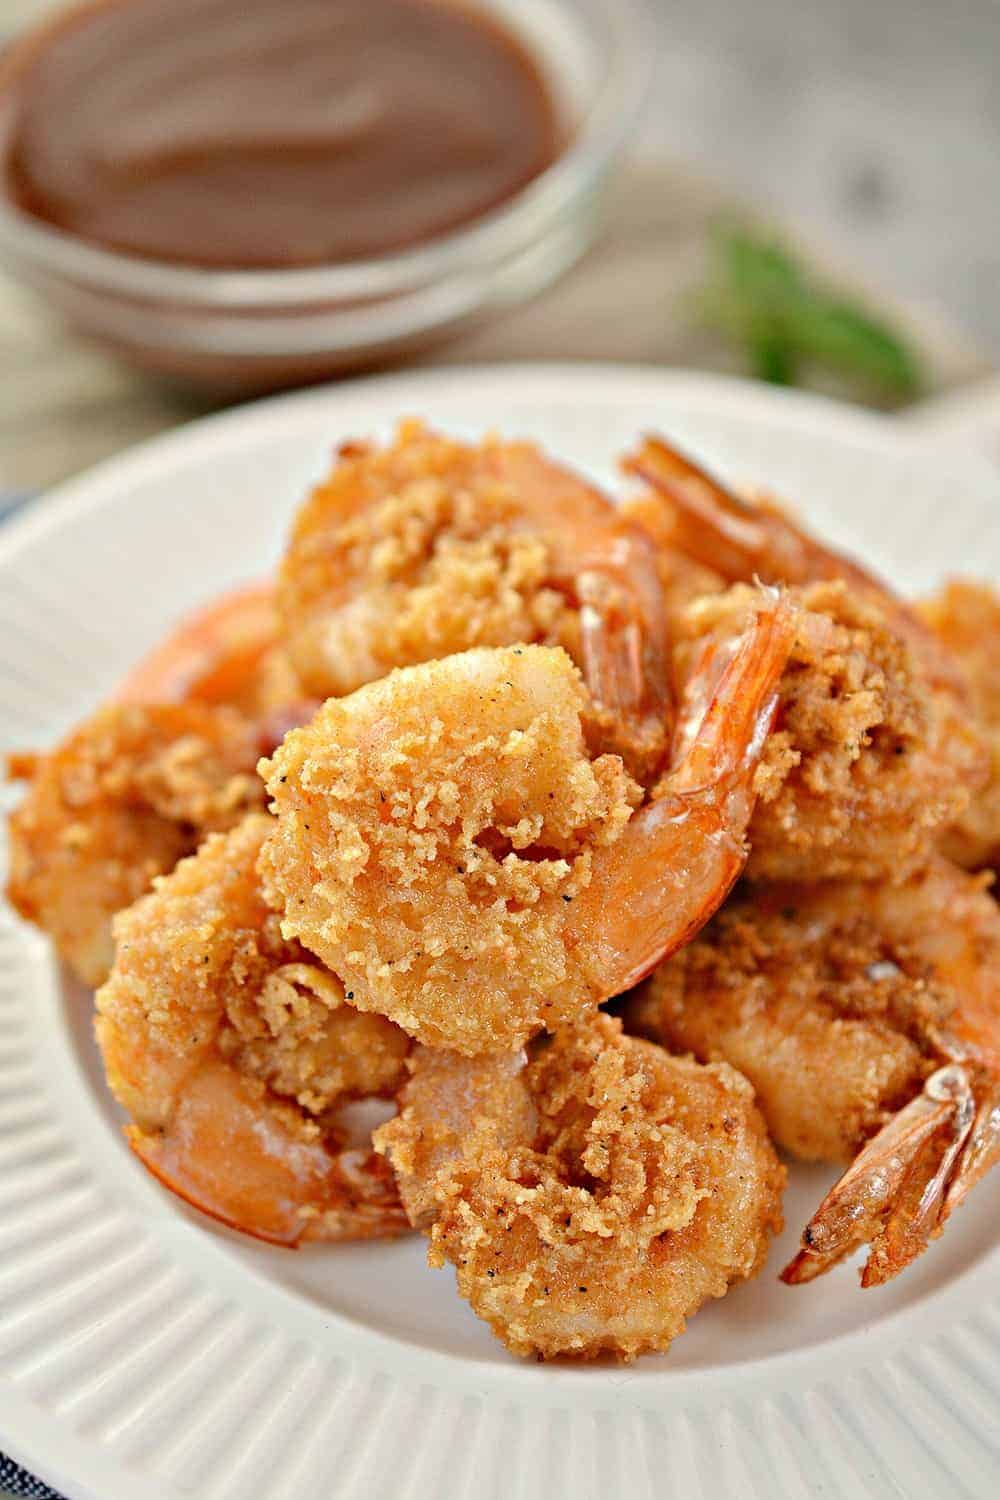 KETO CRISPY FRIED SHRIMP